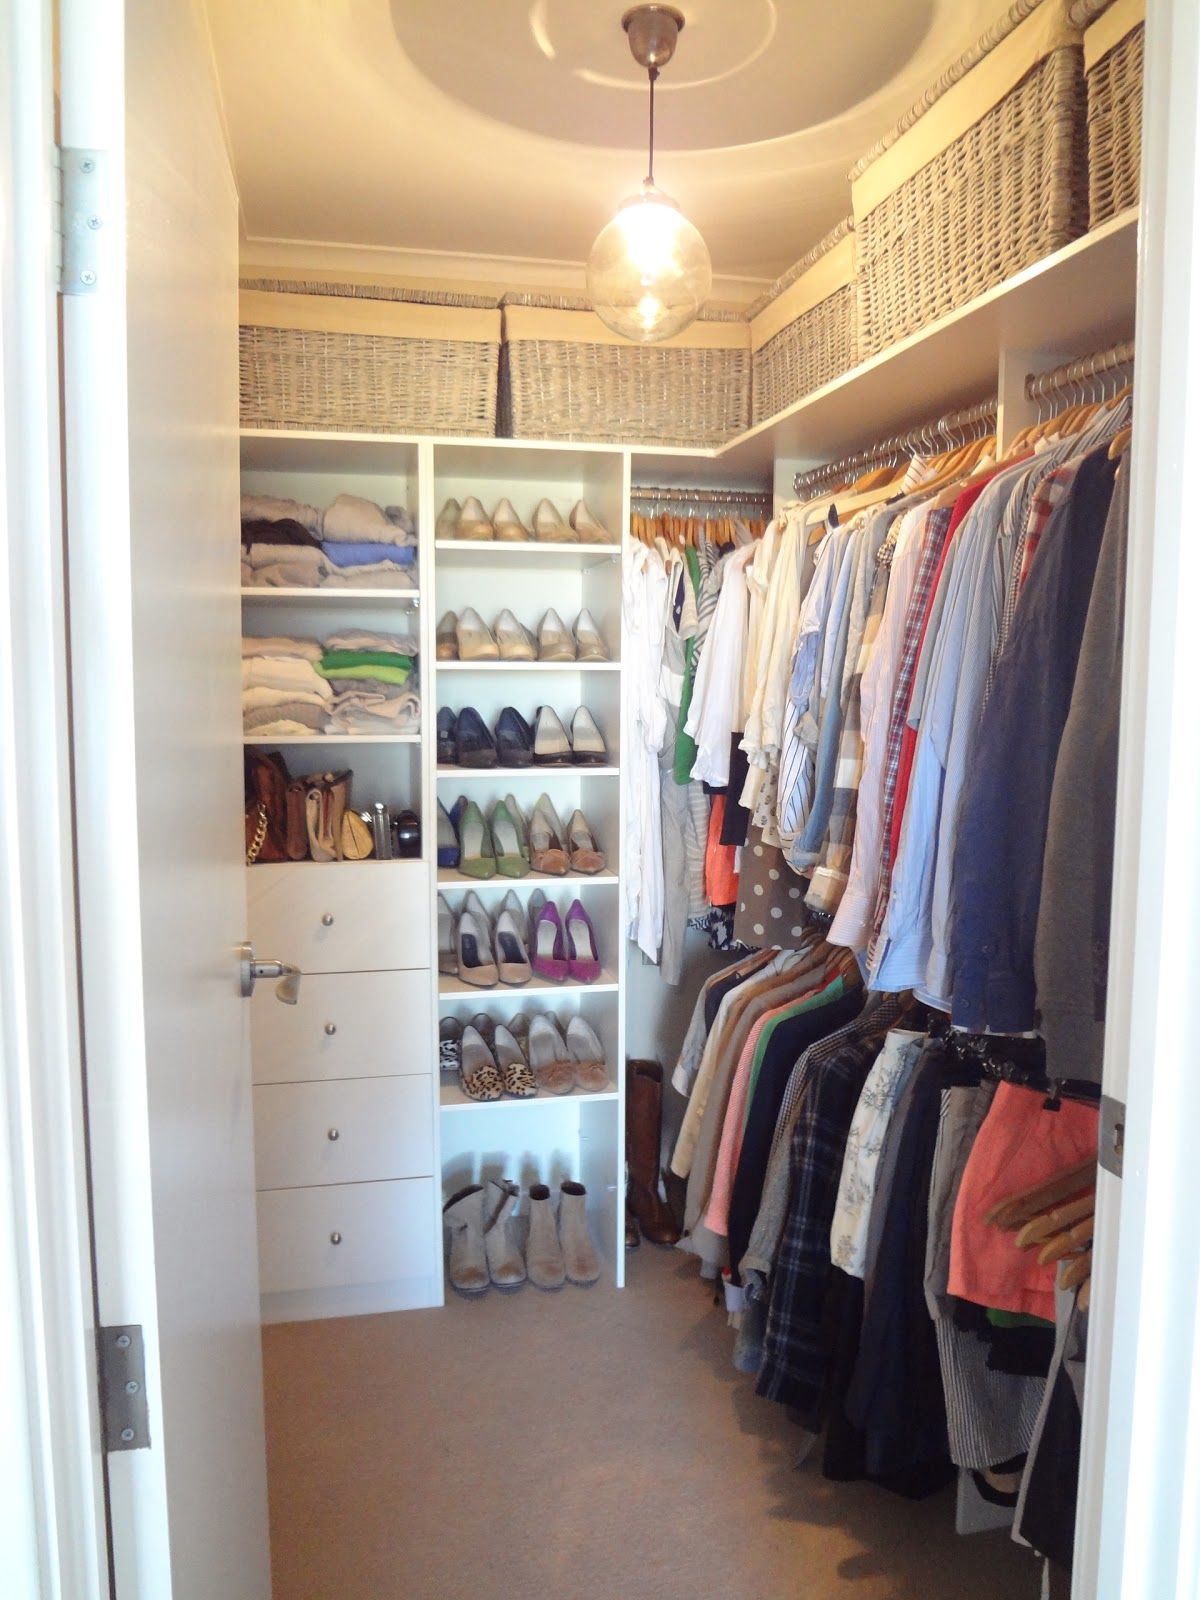 20 Incredible Small Walkin Closet Ideas & Makeovers